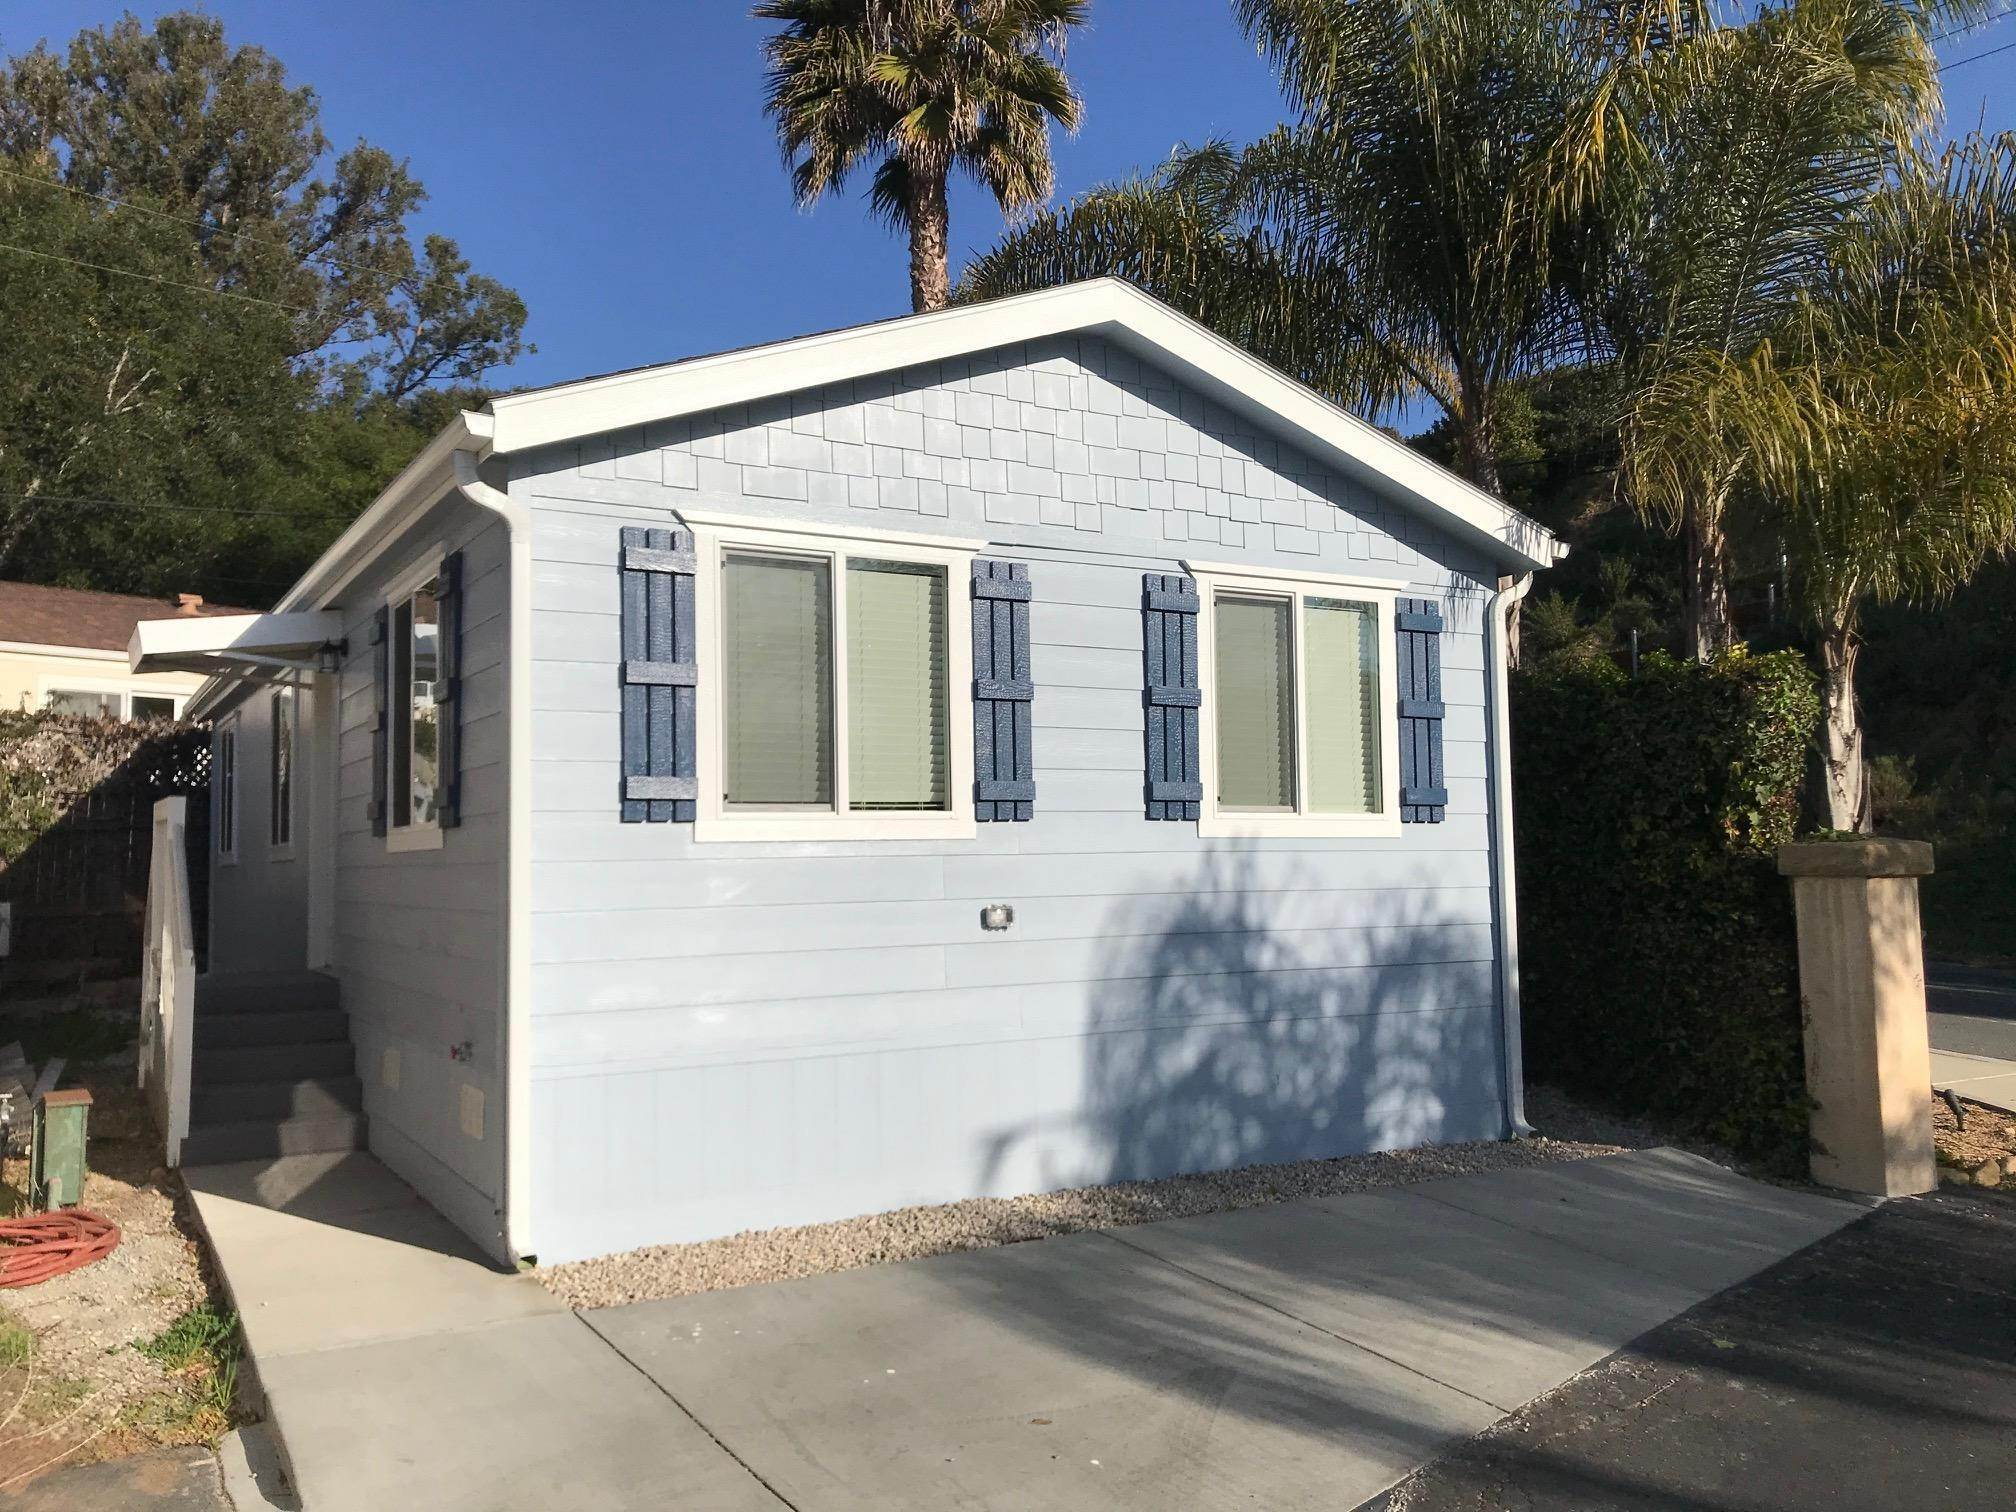 Manufactured Housing for Sale at 2155 Ortega Hill Road Summerland, California 93067 United States